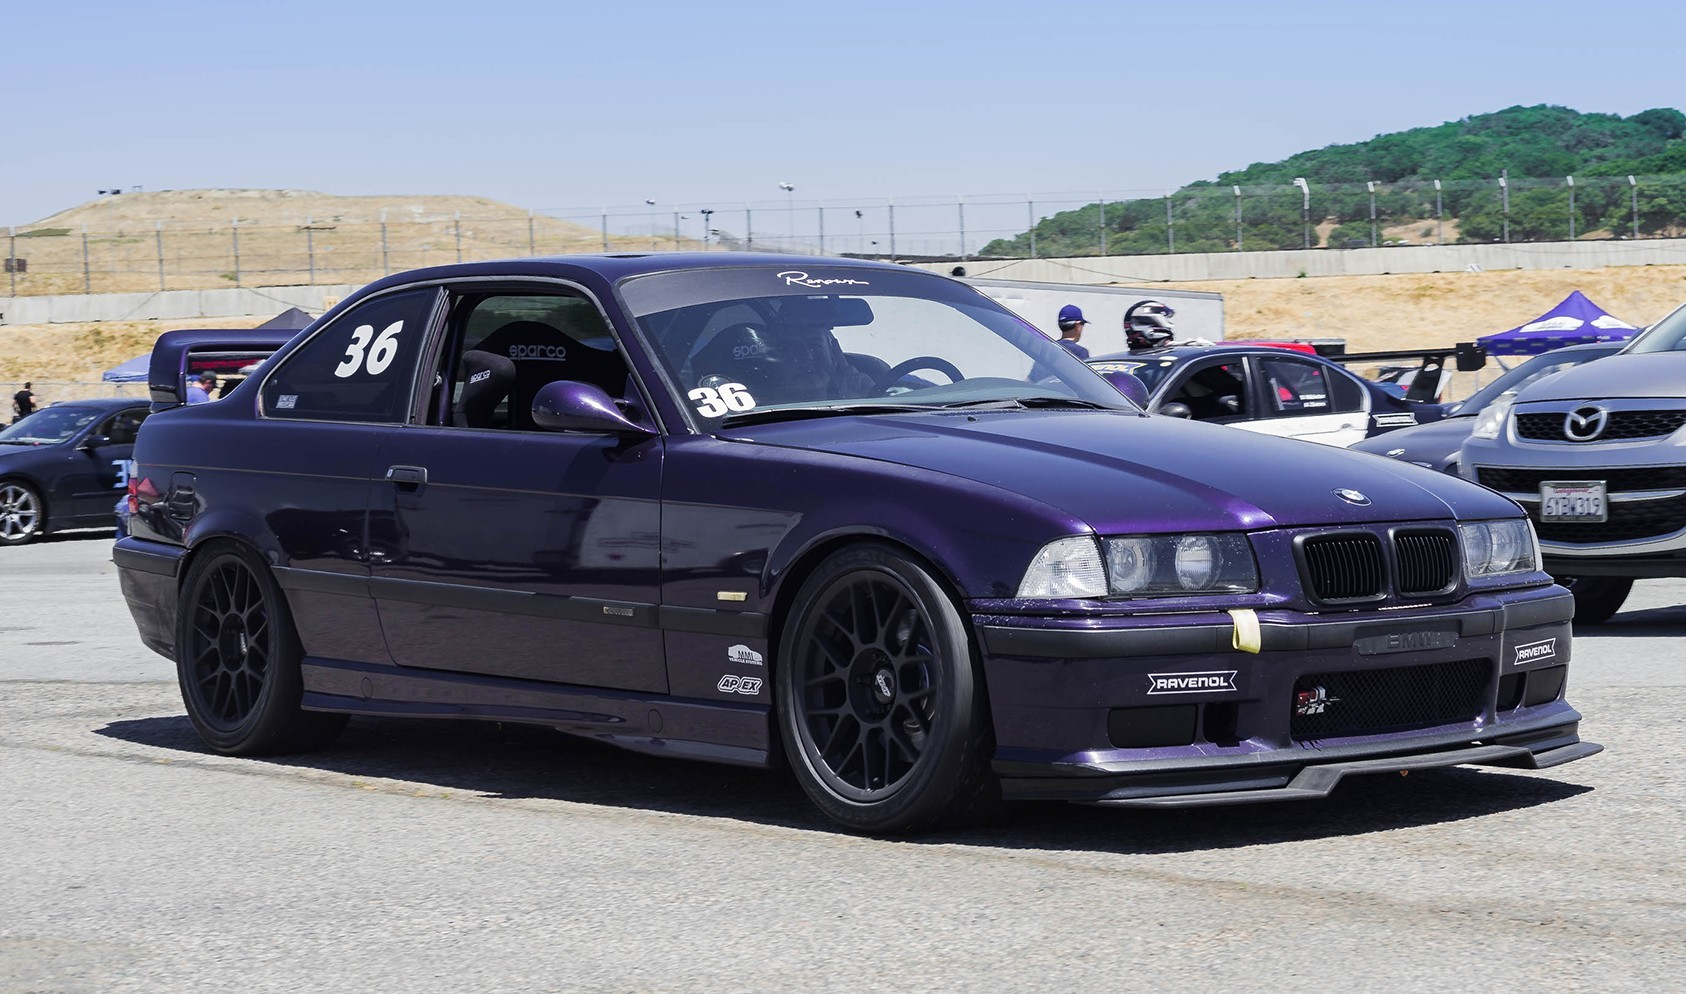 "E36 M3 Square Fitment<br />17x9"" ET42 ARC-8 wheels in Satin Black<br />245/40-17 Hoosier A7 slicks<br />15mm front spacers"